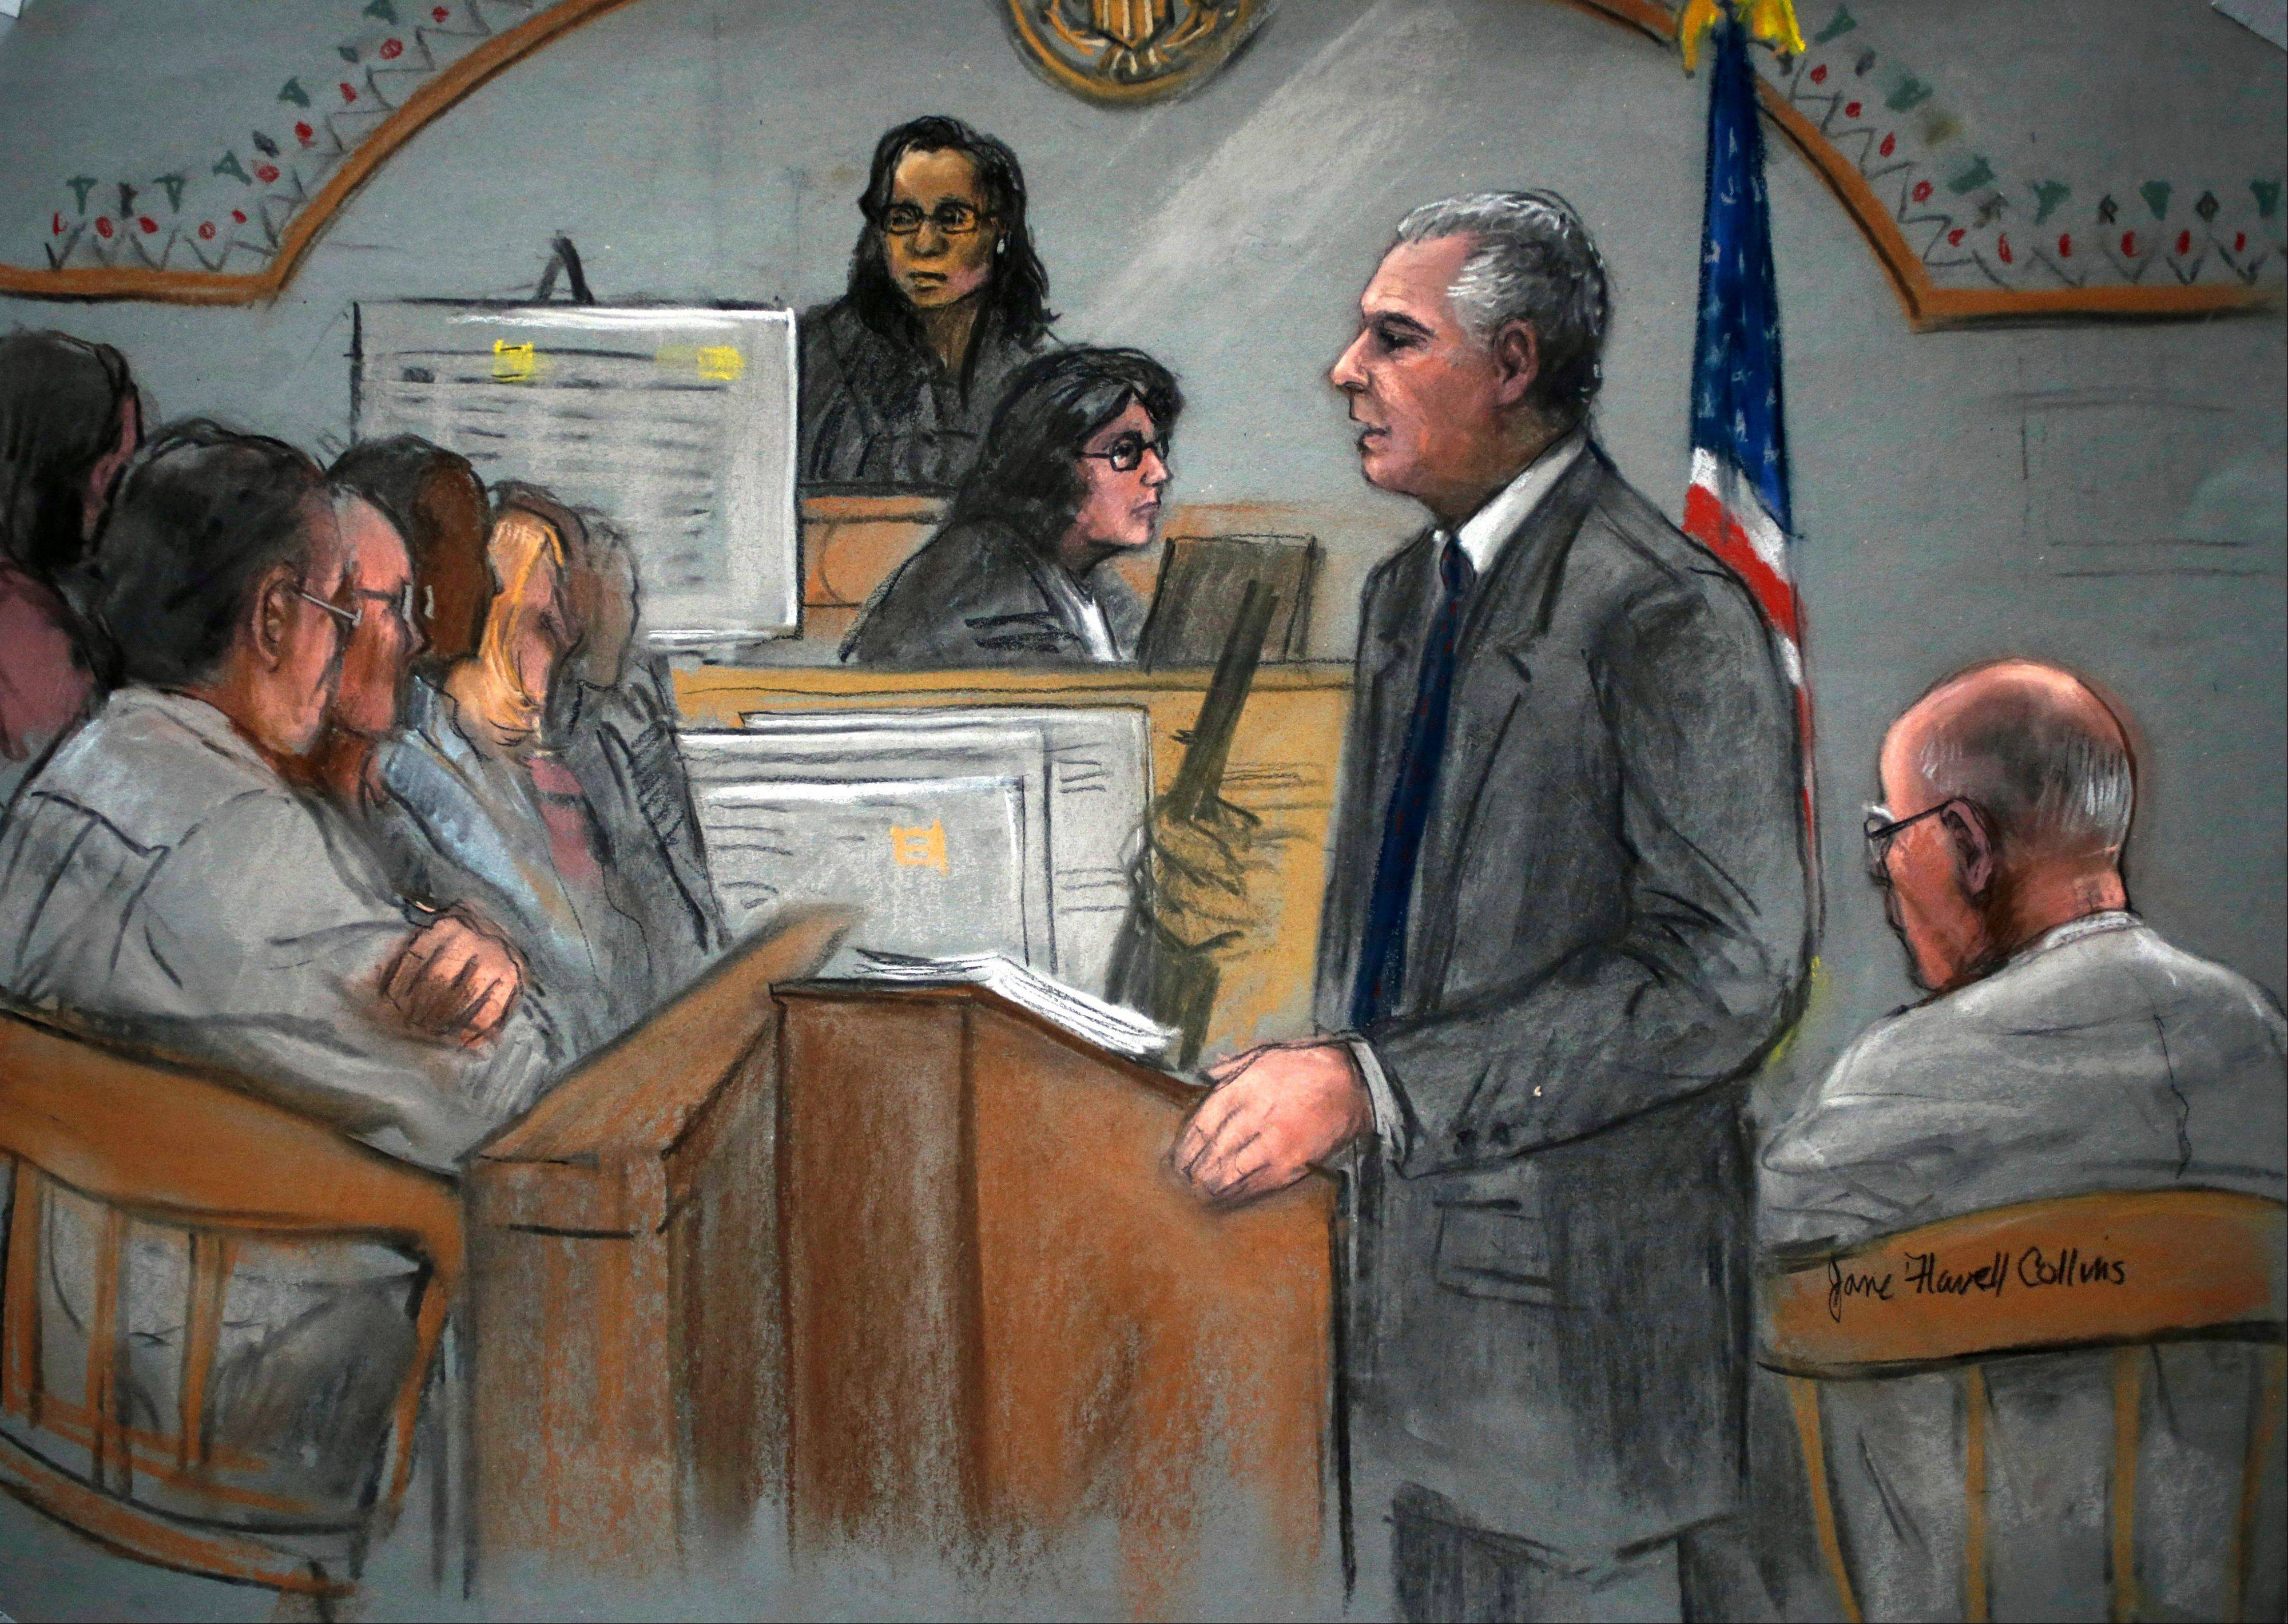 In this courtroom sketch, prosecutor Fred Wyshak, standing, speaks during closing arguments in the trial of James �Whitey� Bulger, right, at U.S. District Court, in Boston, Monday, Aug. 5, 2013. A federal prosecutor summed up the government�s case by calling Bulger �one of the most vicious, violent and calculating criminals ever to walk the streets of Boston,� and urged the jury to convict him of charges that include 19 killings committed during the 1970s and �80s.